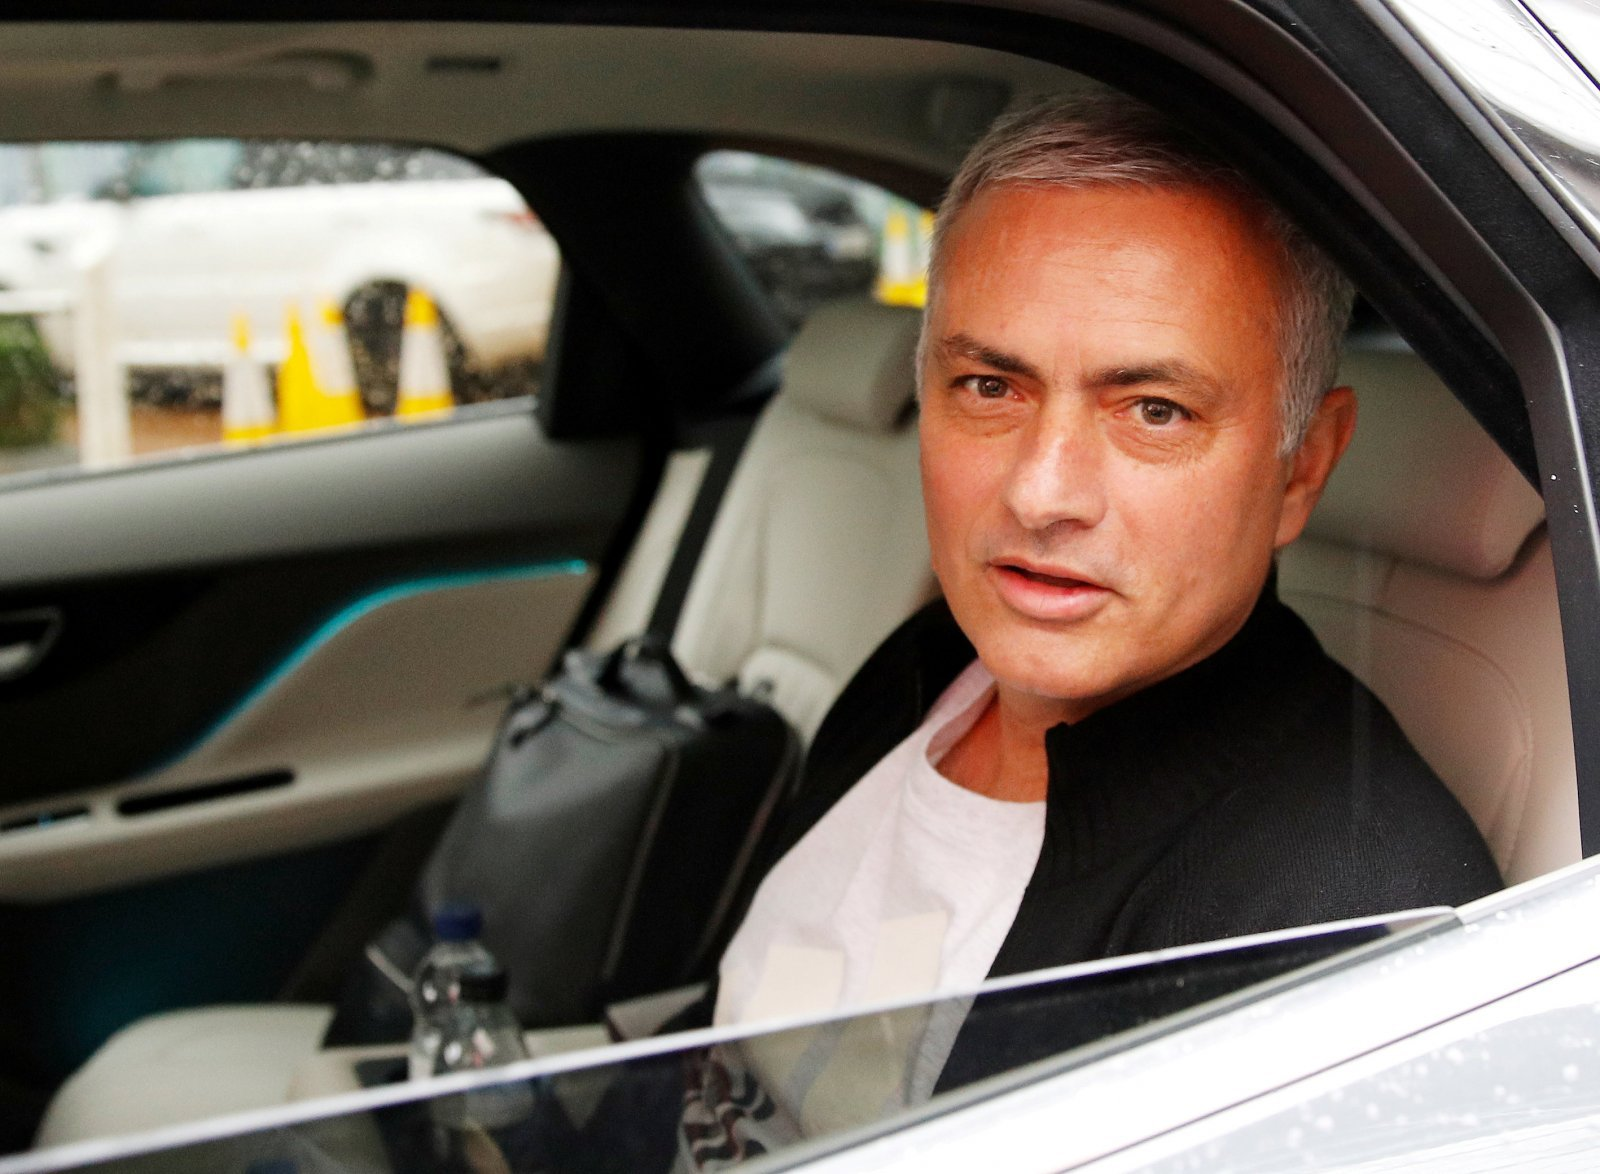 Celtic: Jose Mourinho turned down Hoops job earlier this year